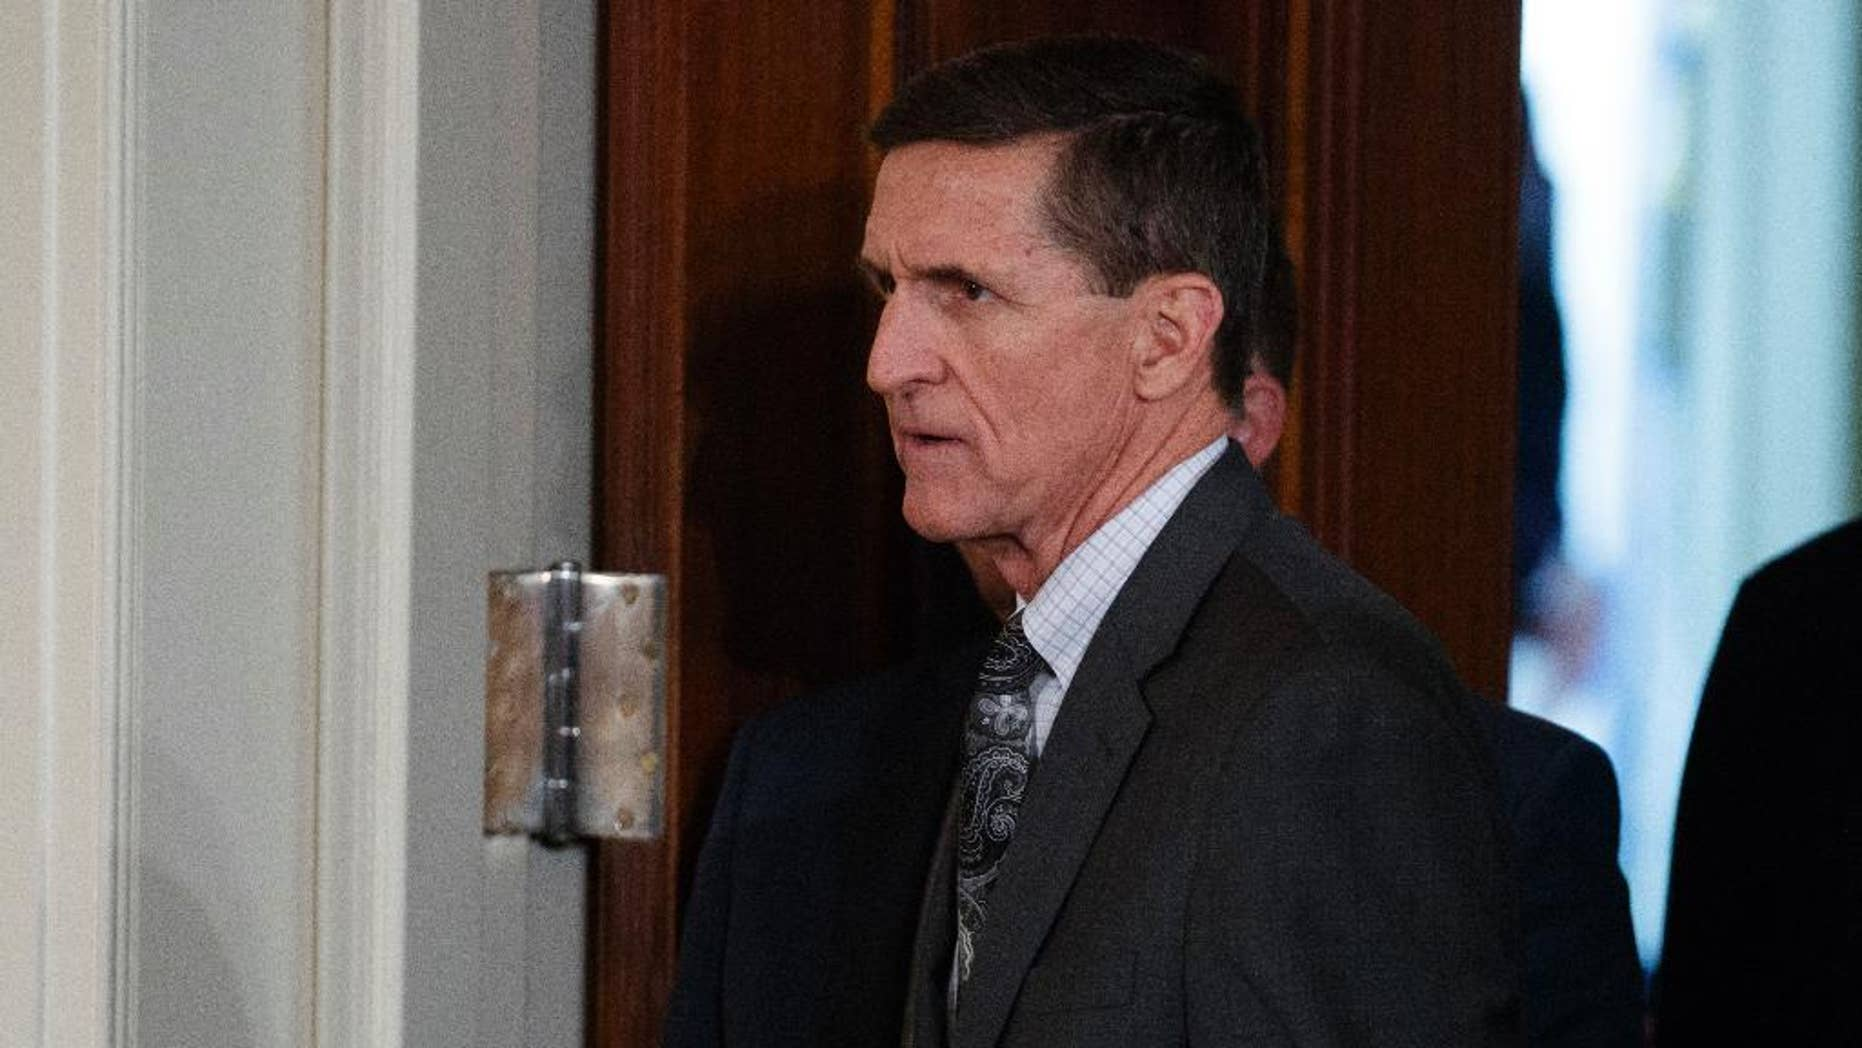 FILE - In this Feb. 13, 2017 file photo, Mike Flynn arrives for a news conference in the East Room of the White House in Washington. Targeted in widening investigations of his foreign entanglements, President Donald Trump's former national security adviser, Michael Flynn, is at odds with his former Turkish client over two unusual payments totaling $80,000 that Flynn's firm sent back last year to the client. The disagreement points to inconsistencies in Flynn's accounts to the U.S. government about his work for foreign interests.(AP Photo/Evan Vucci, File)